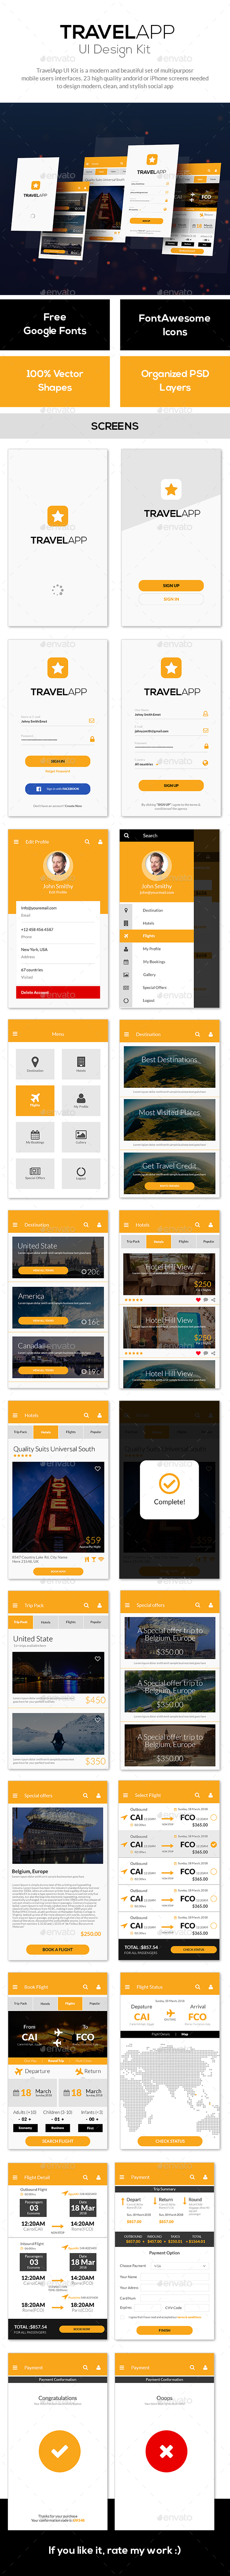 Travel, Tour, Hotel Booking Mobile App Mobile UI - Star Travel - User Interfaces Web Elements